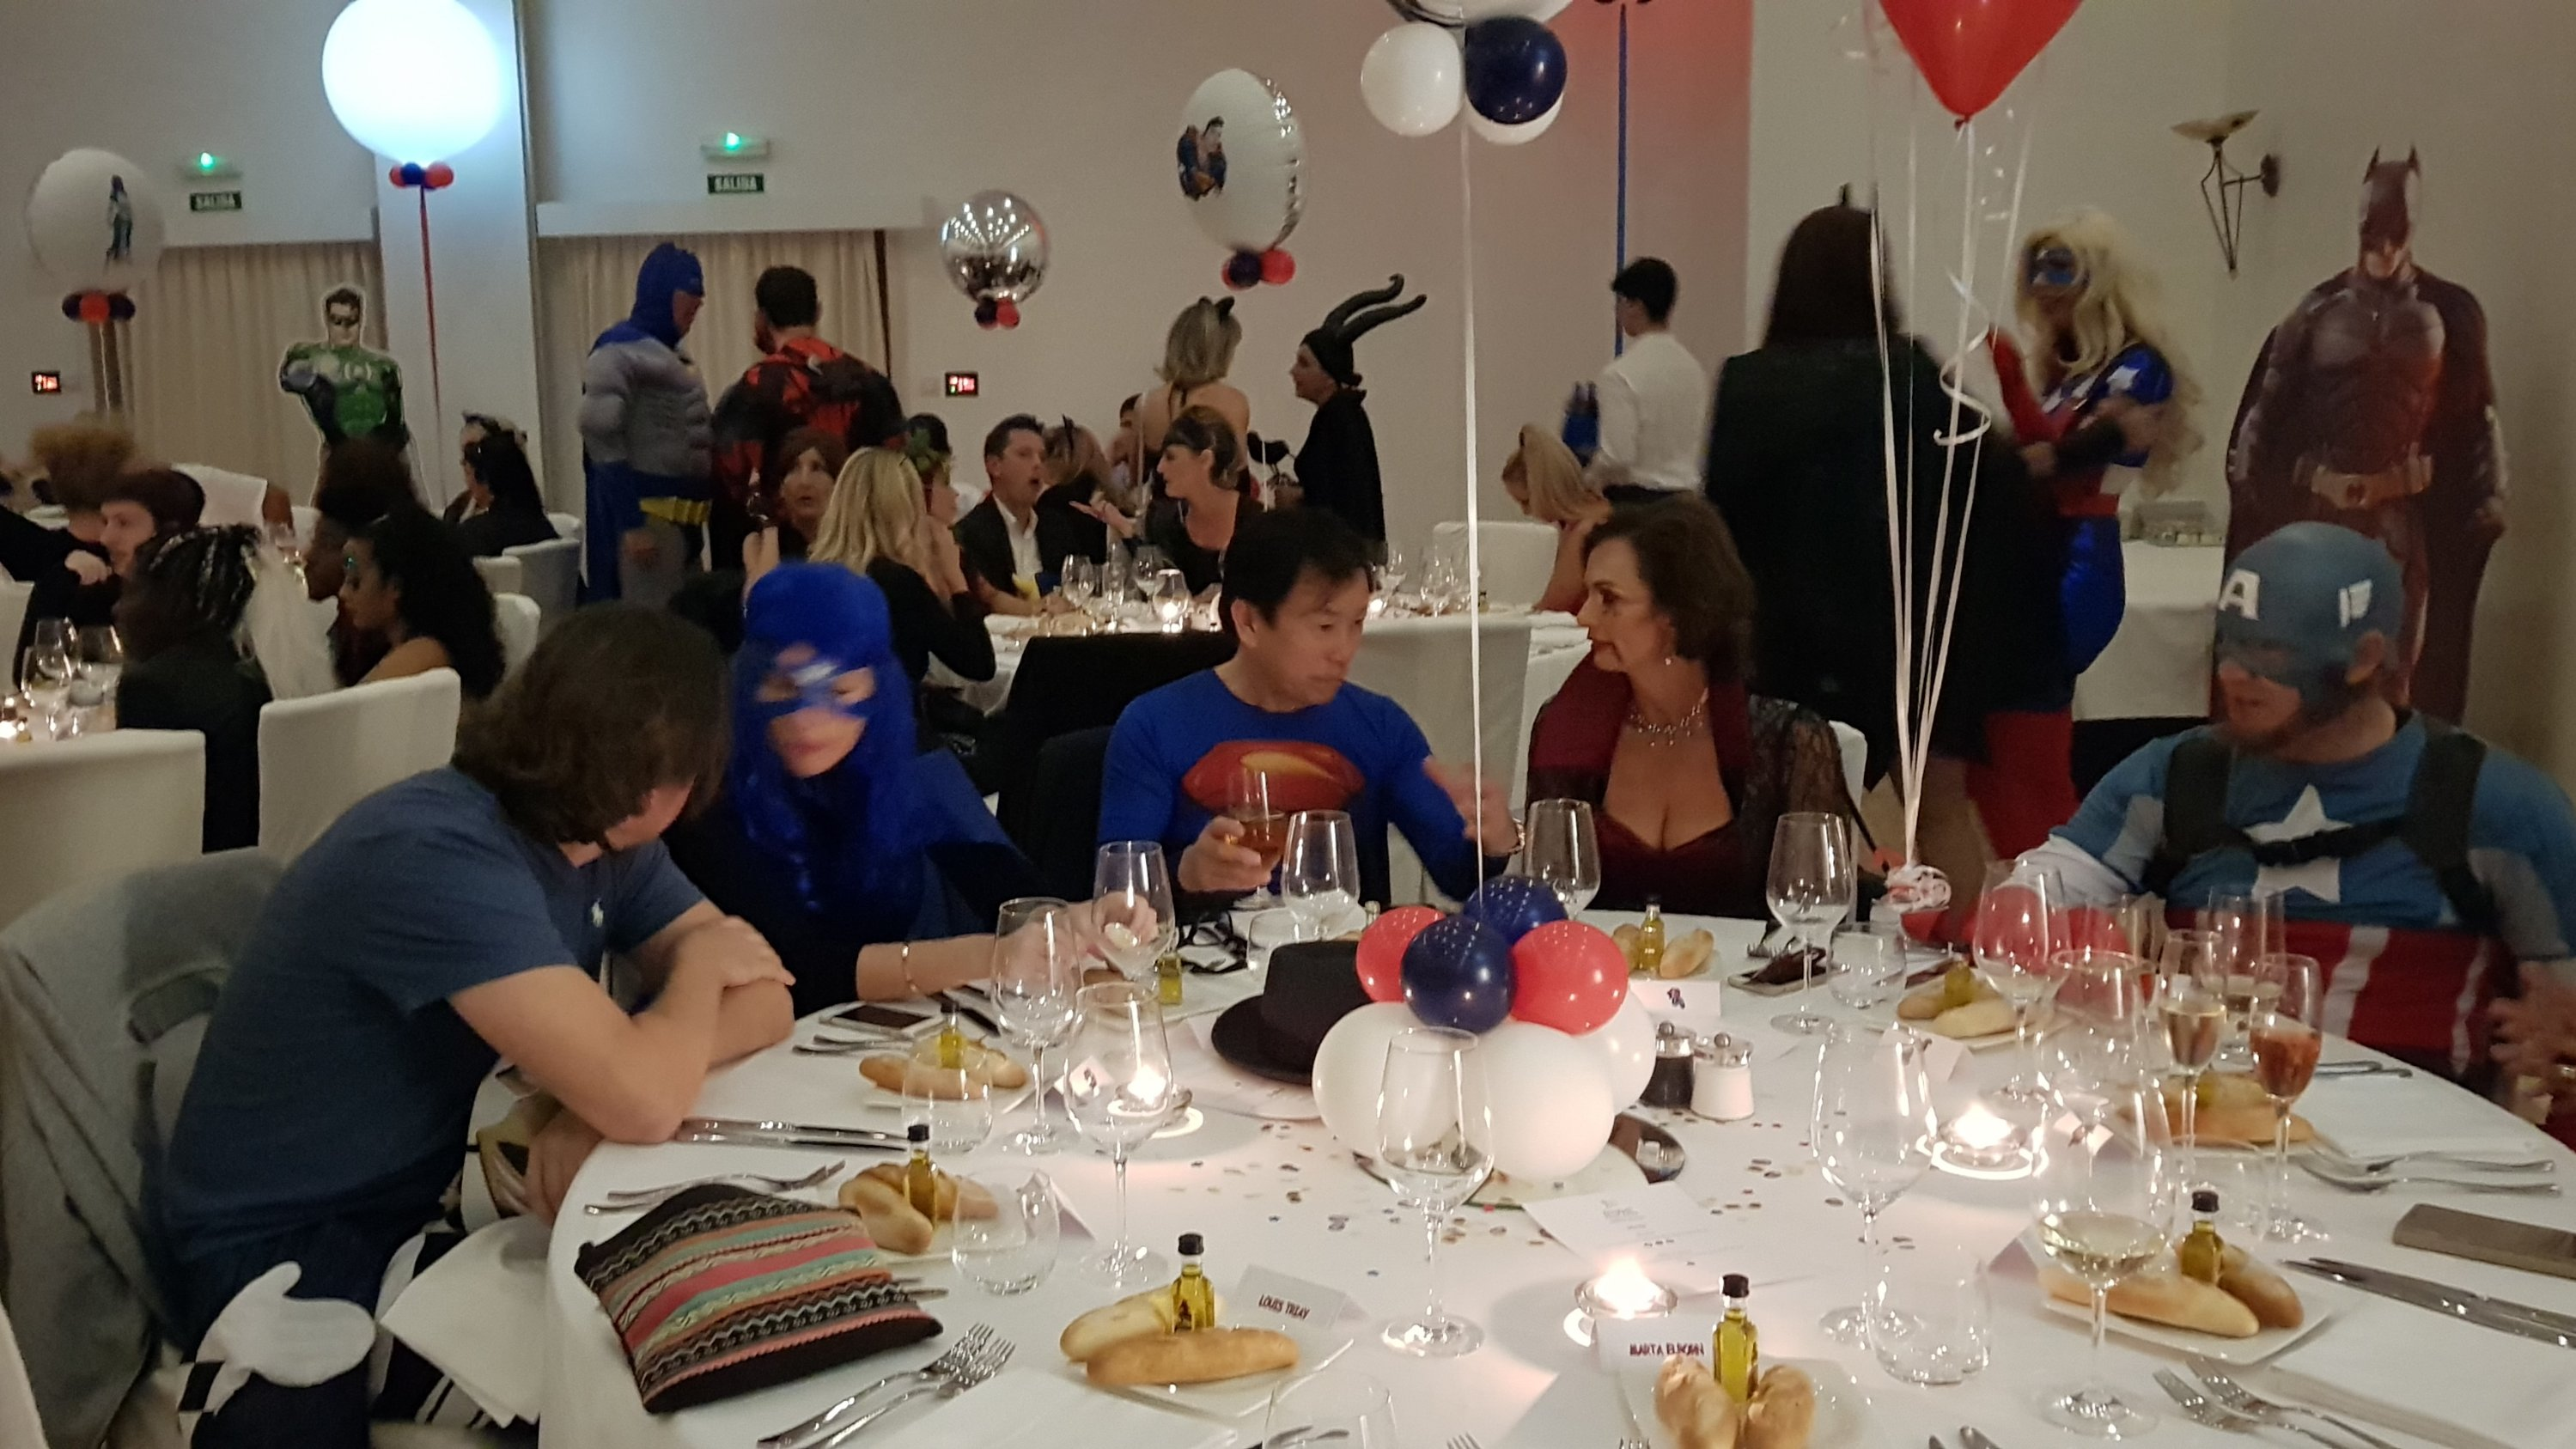 Birthday party guests enjoying dinner party dressed as Superheroes and supervillains